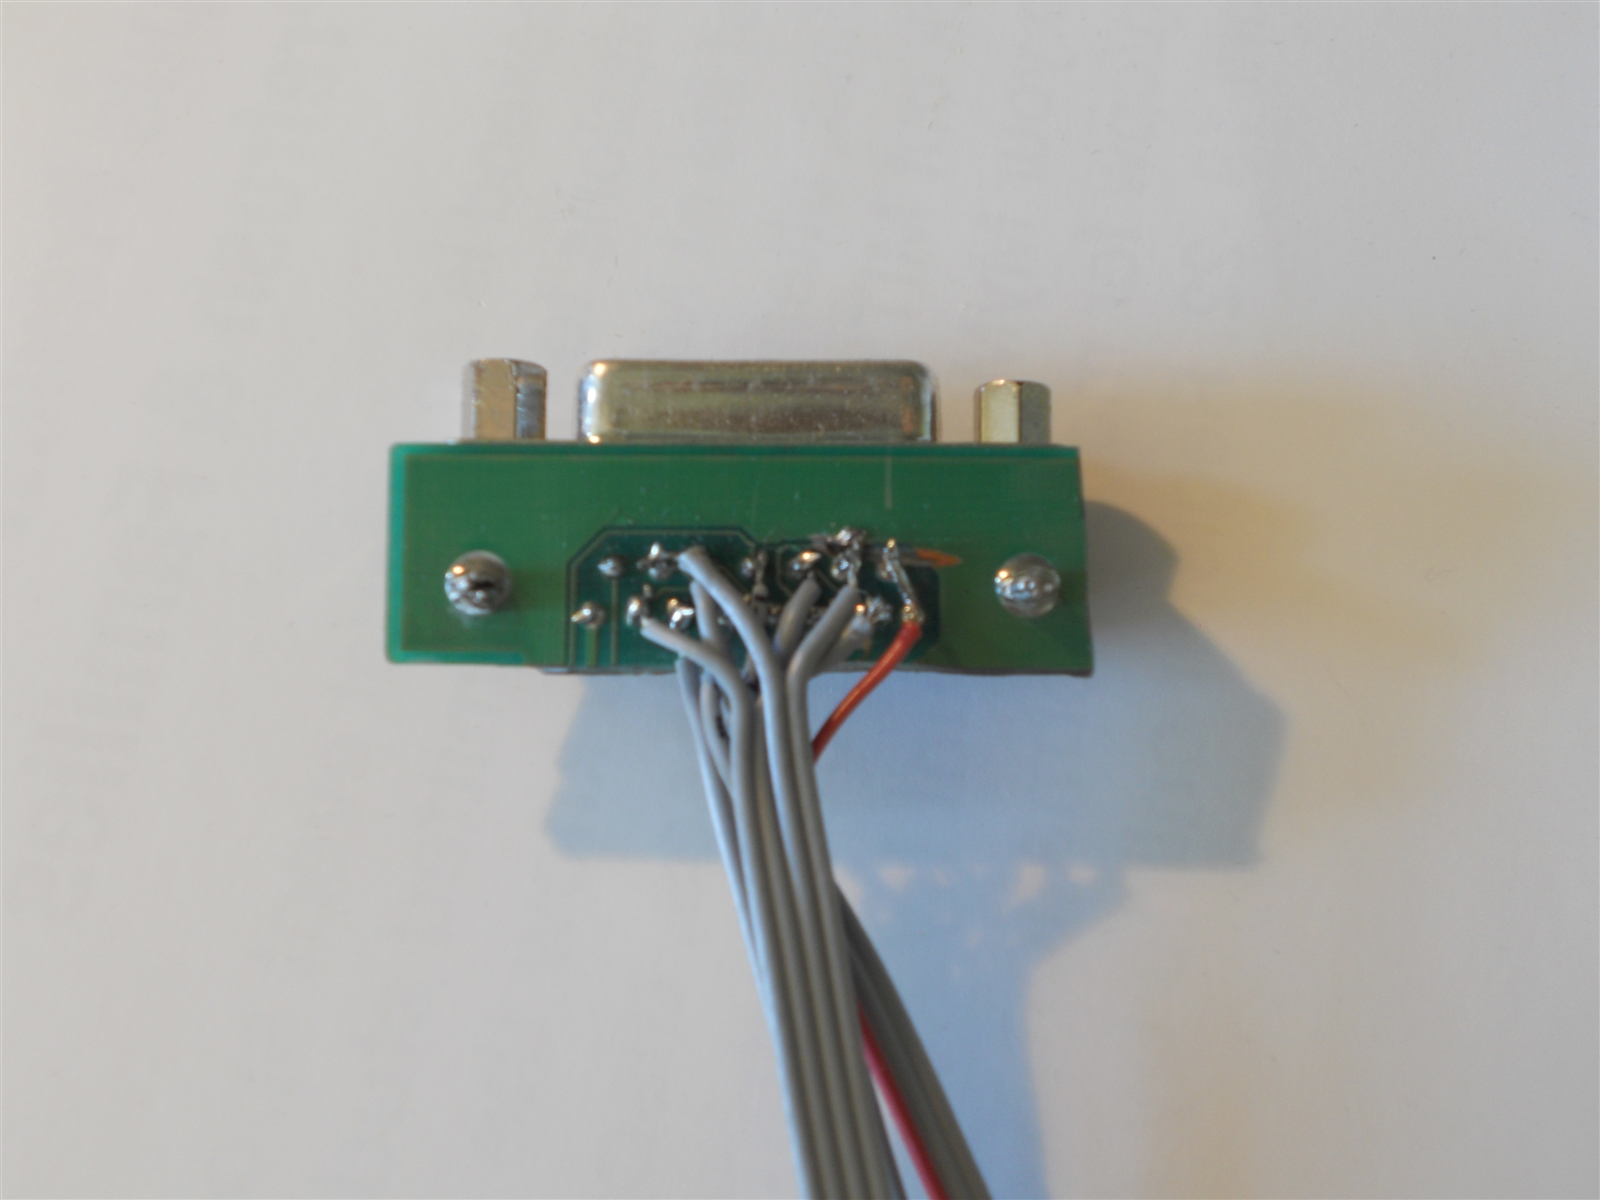 In the picture below, the top three header pins are the 5V and ground  connections (red is 5V). The middle four are the analog connections, and  the bottom ...